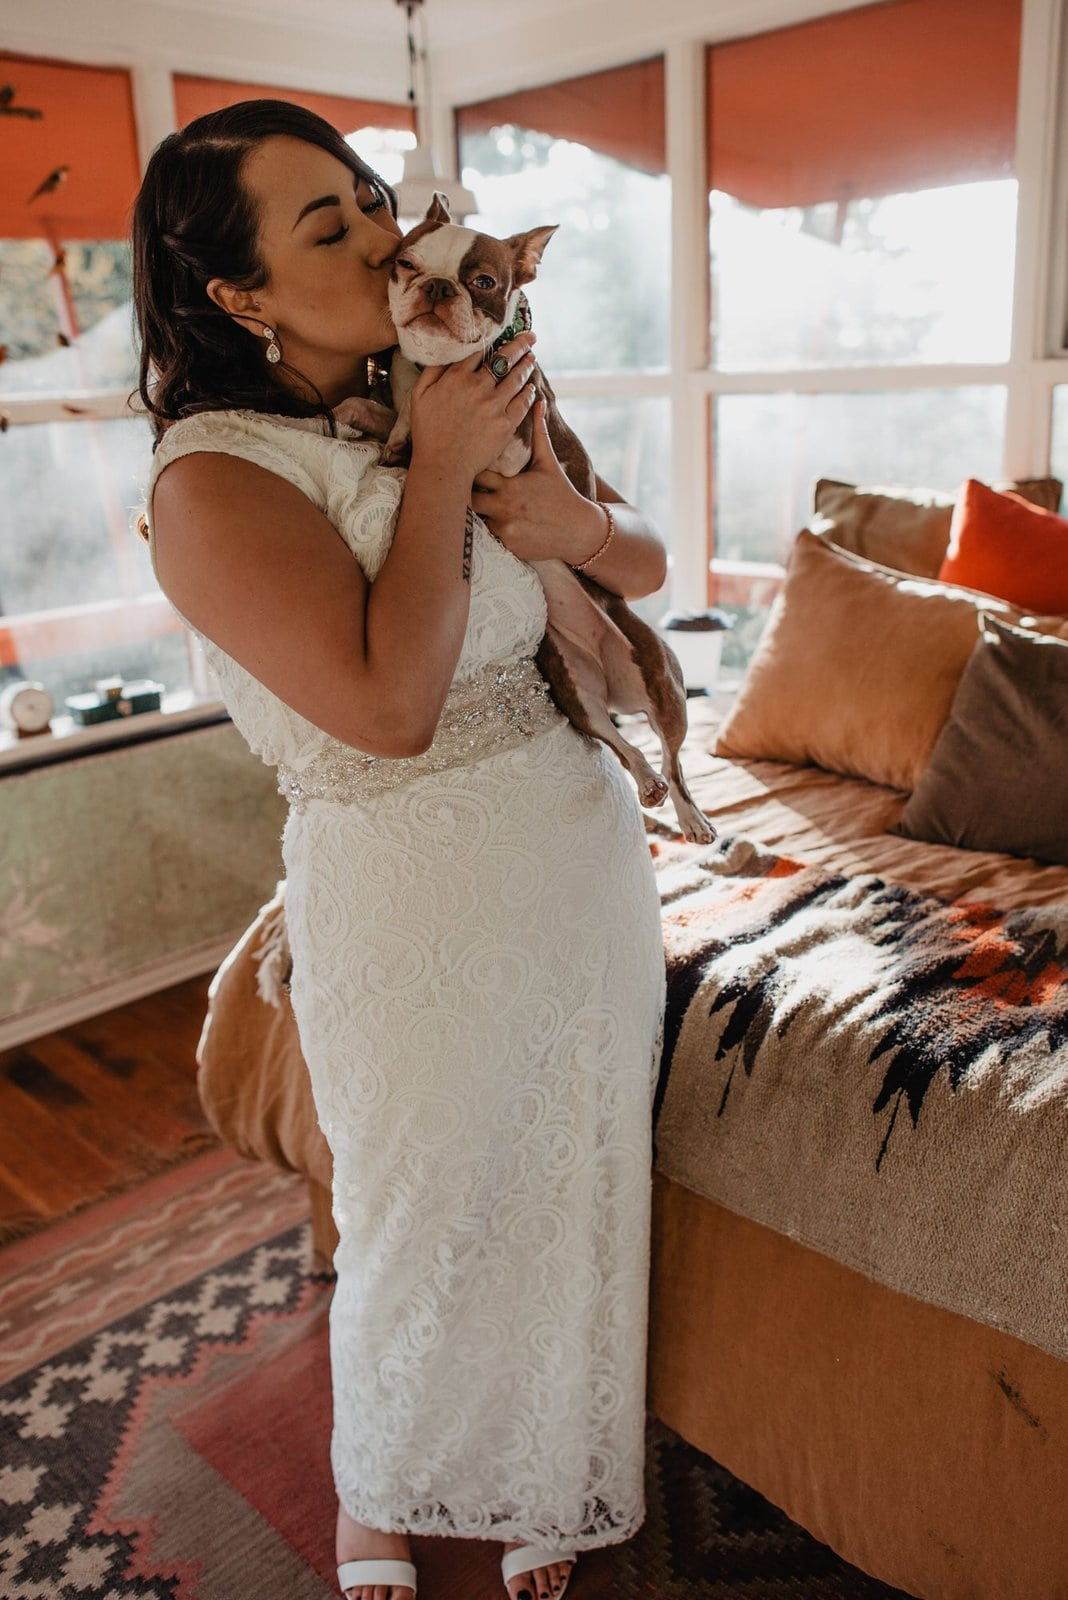 Bride hugs her dog during wedding.